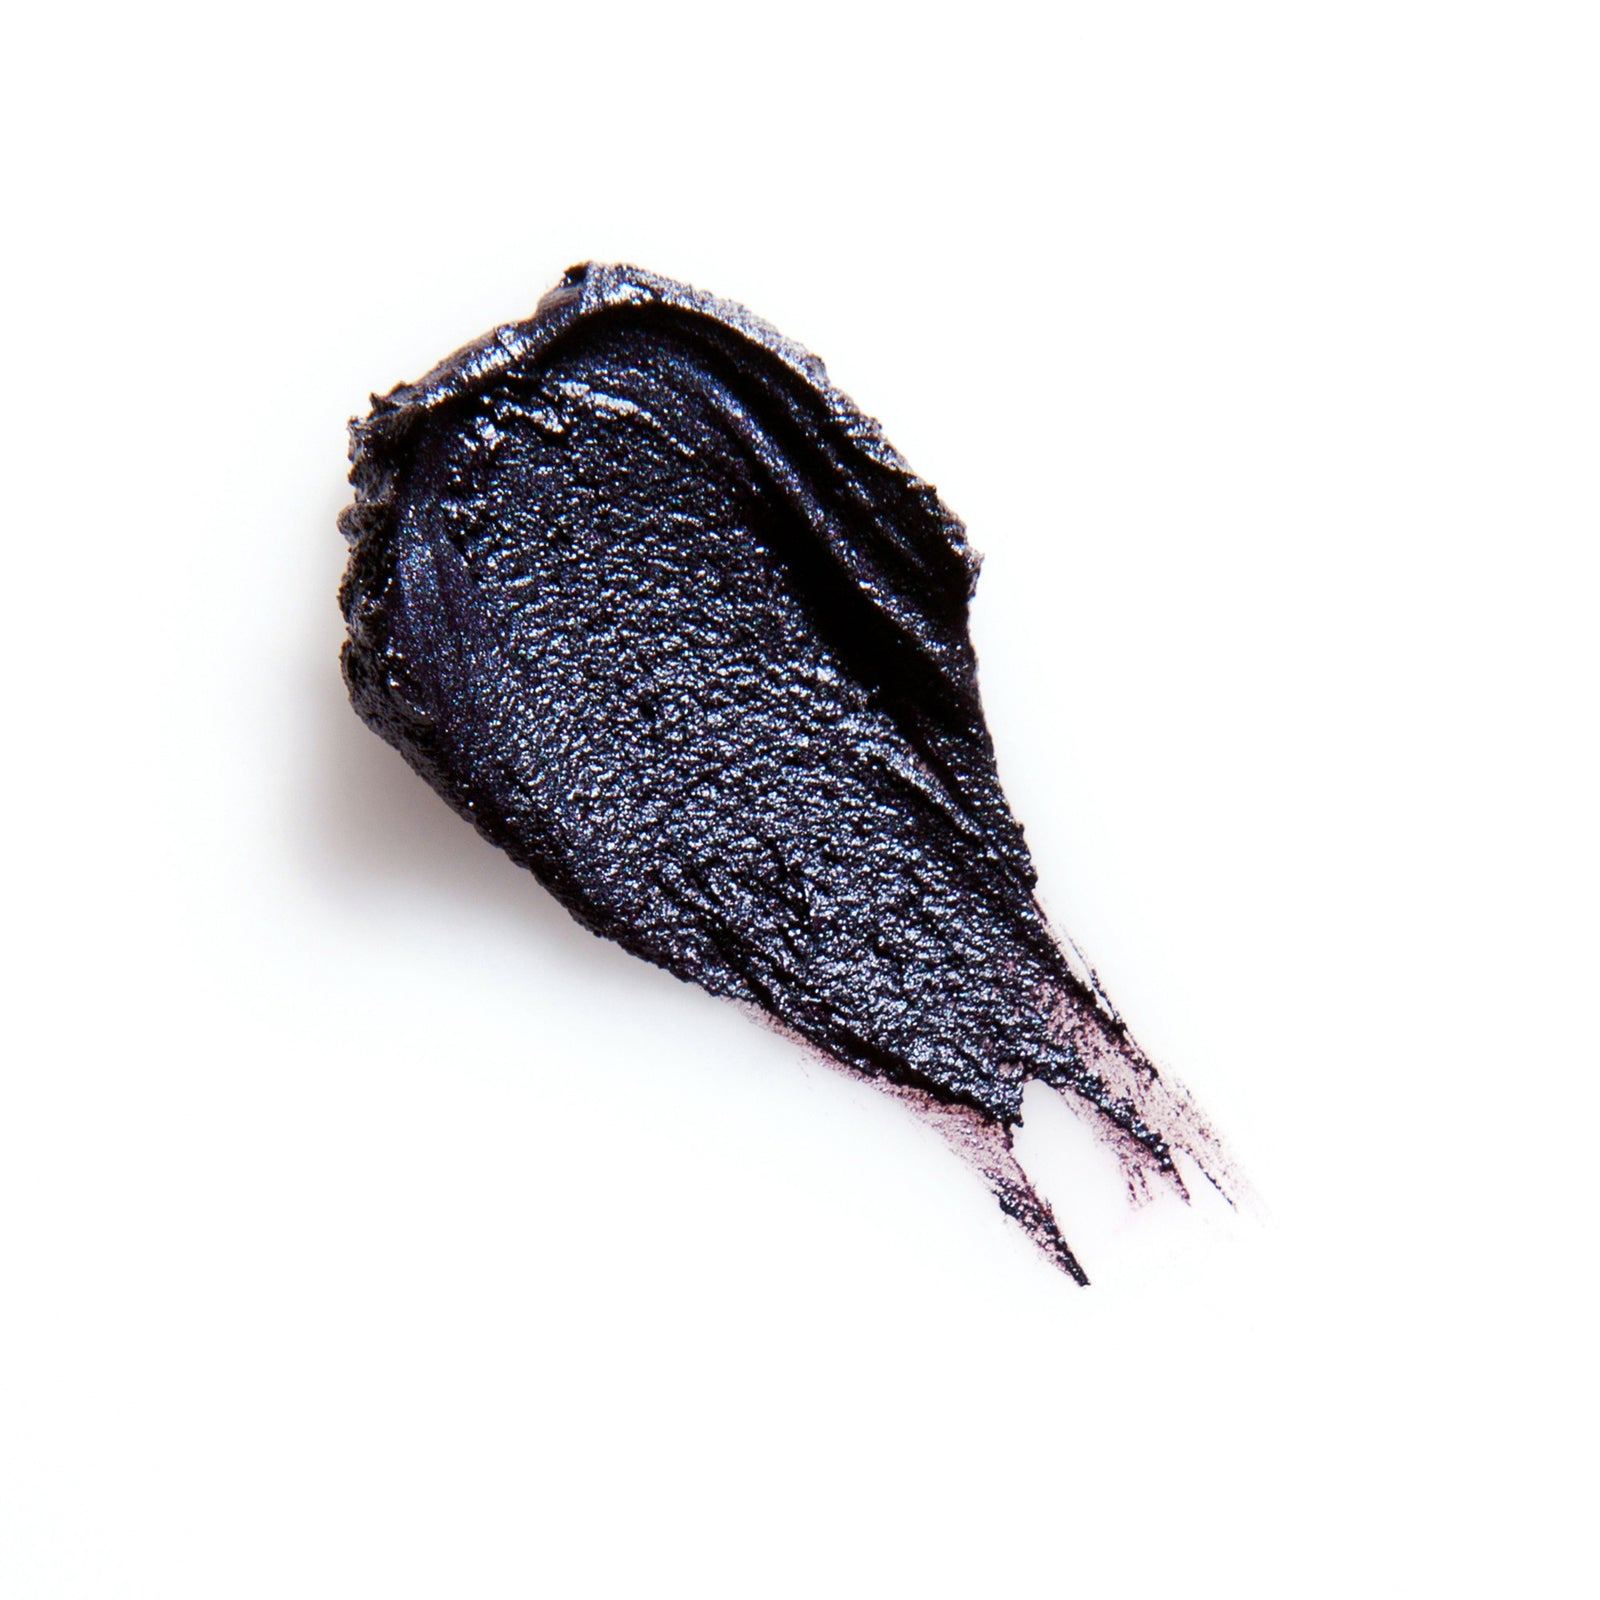 Shadow Self natural lipstick cruelty free makeup swatch